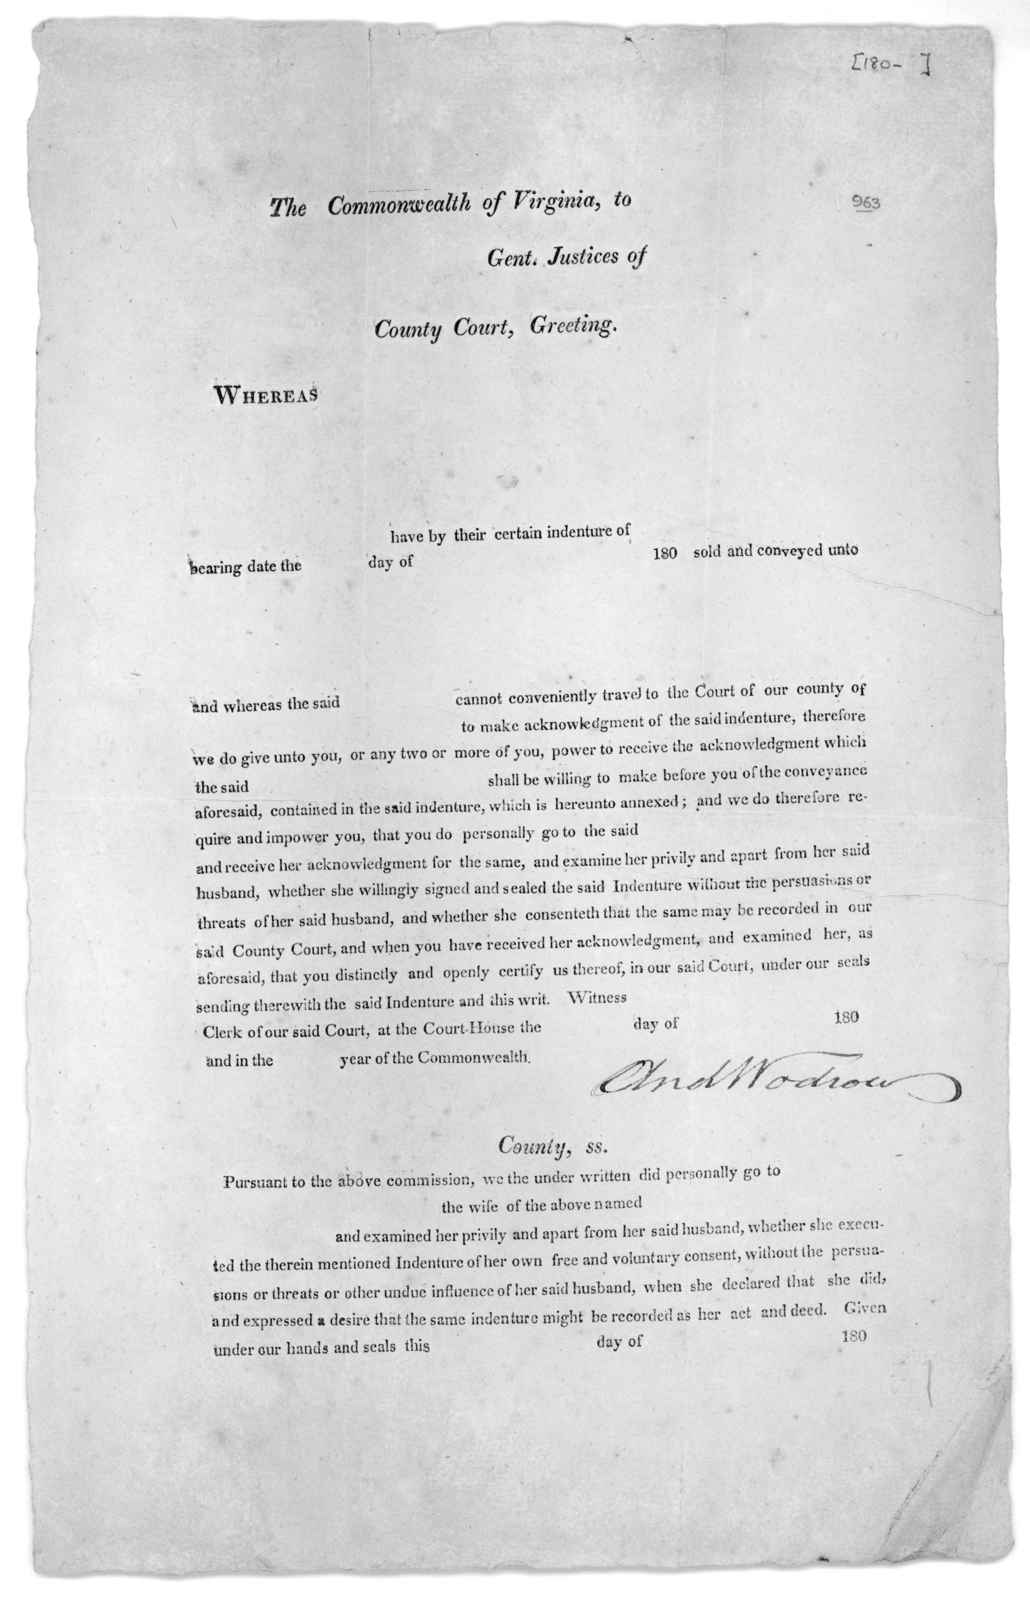 The Commonwealth of Virginia, to Gent. Justices of County Court, Greeting. [Blank form for a dead, whereby a wife is allowed to grant permission for the sale of property owned jointly with her husband without appearing before the County court.]